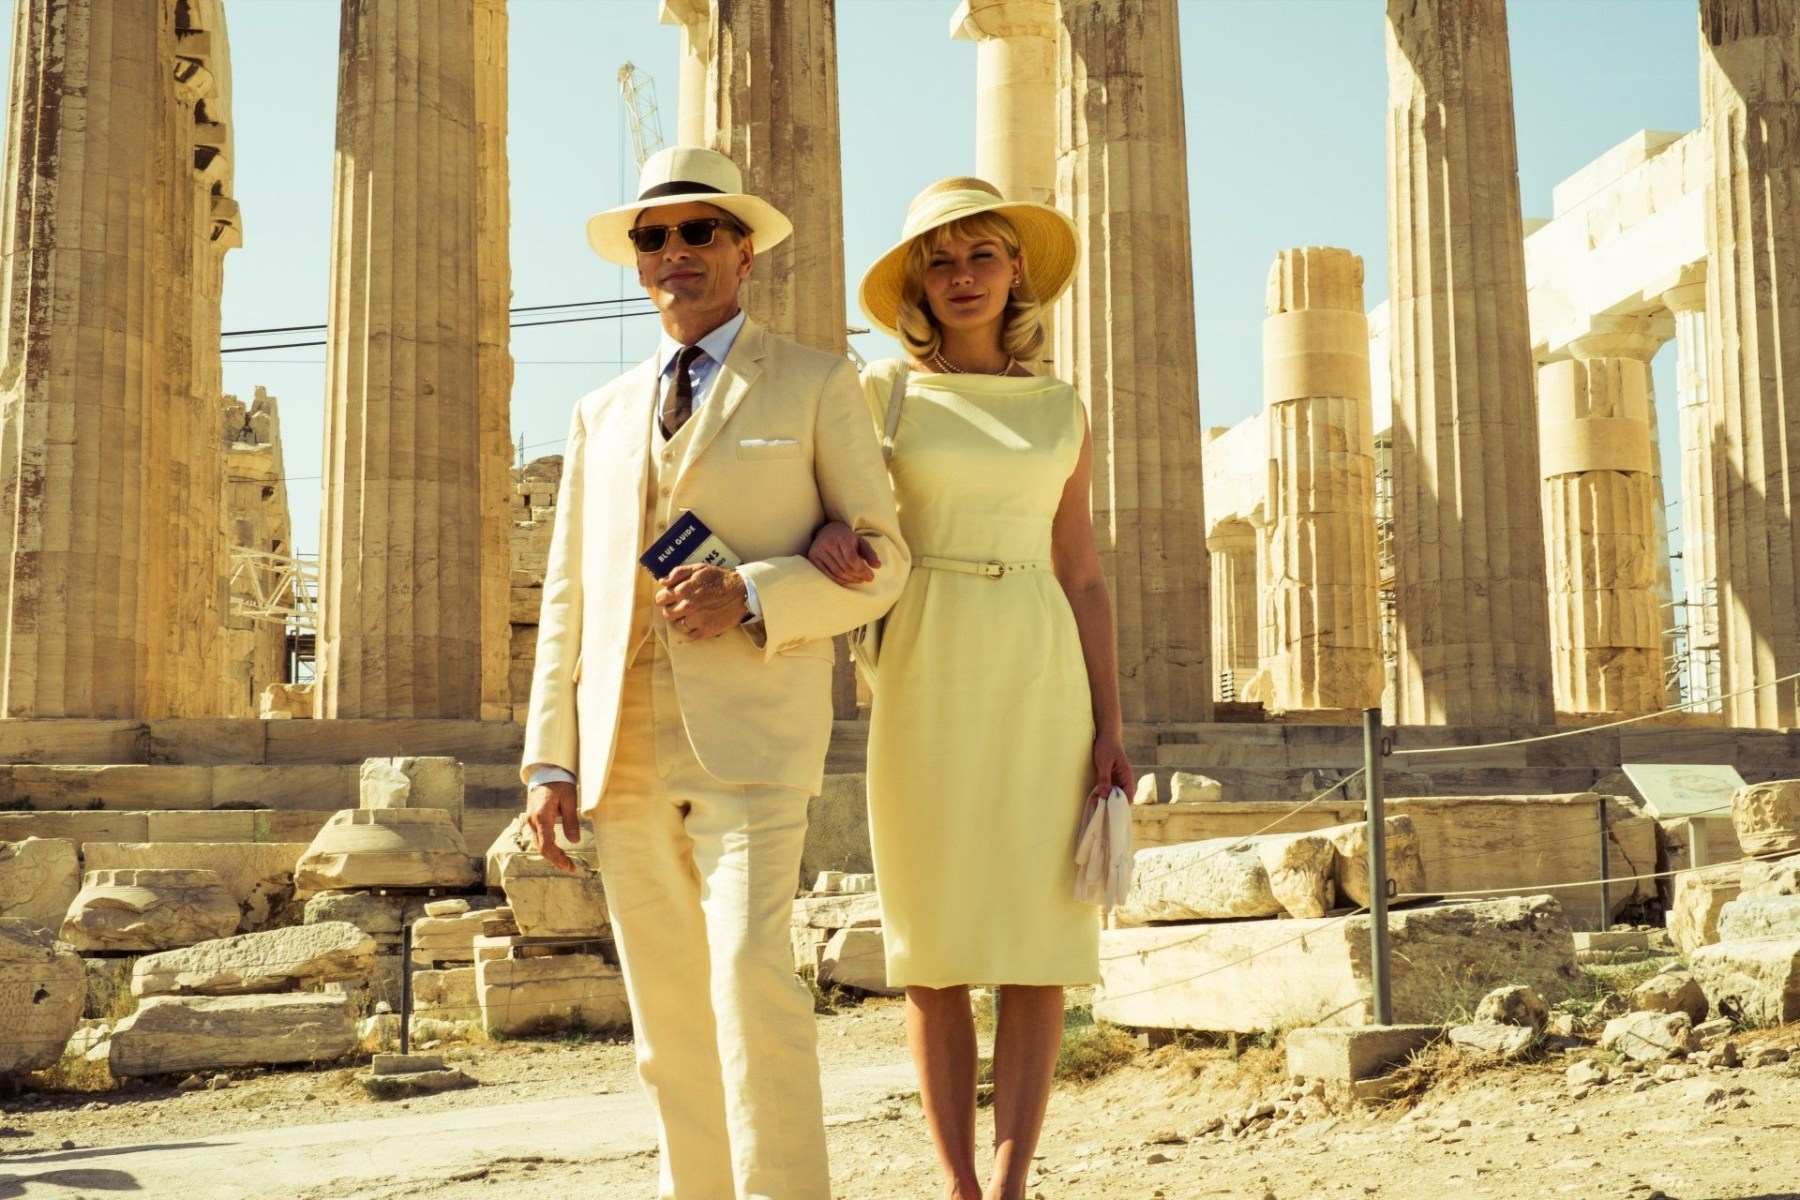 The Two Faces of January Behind the Scenes Photos & Tech Specs